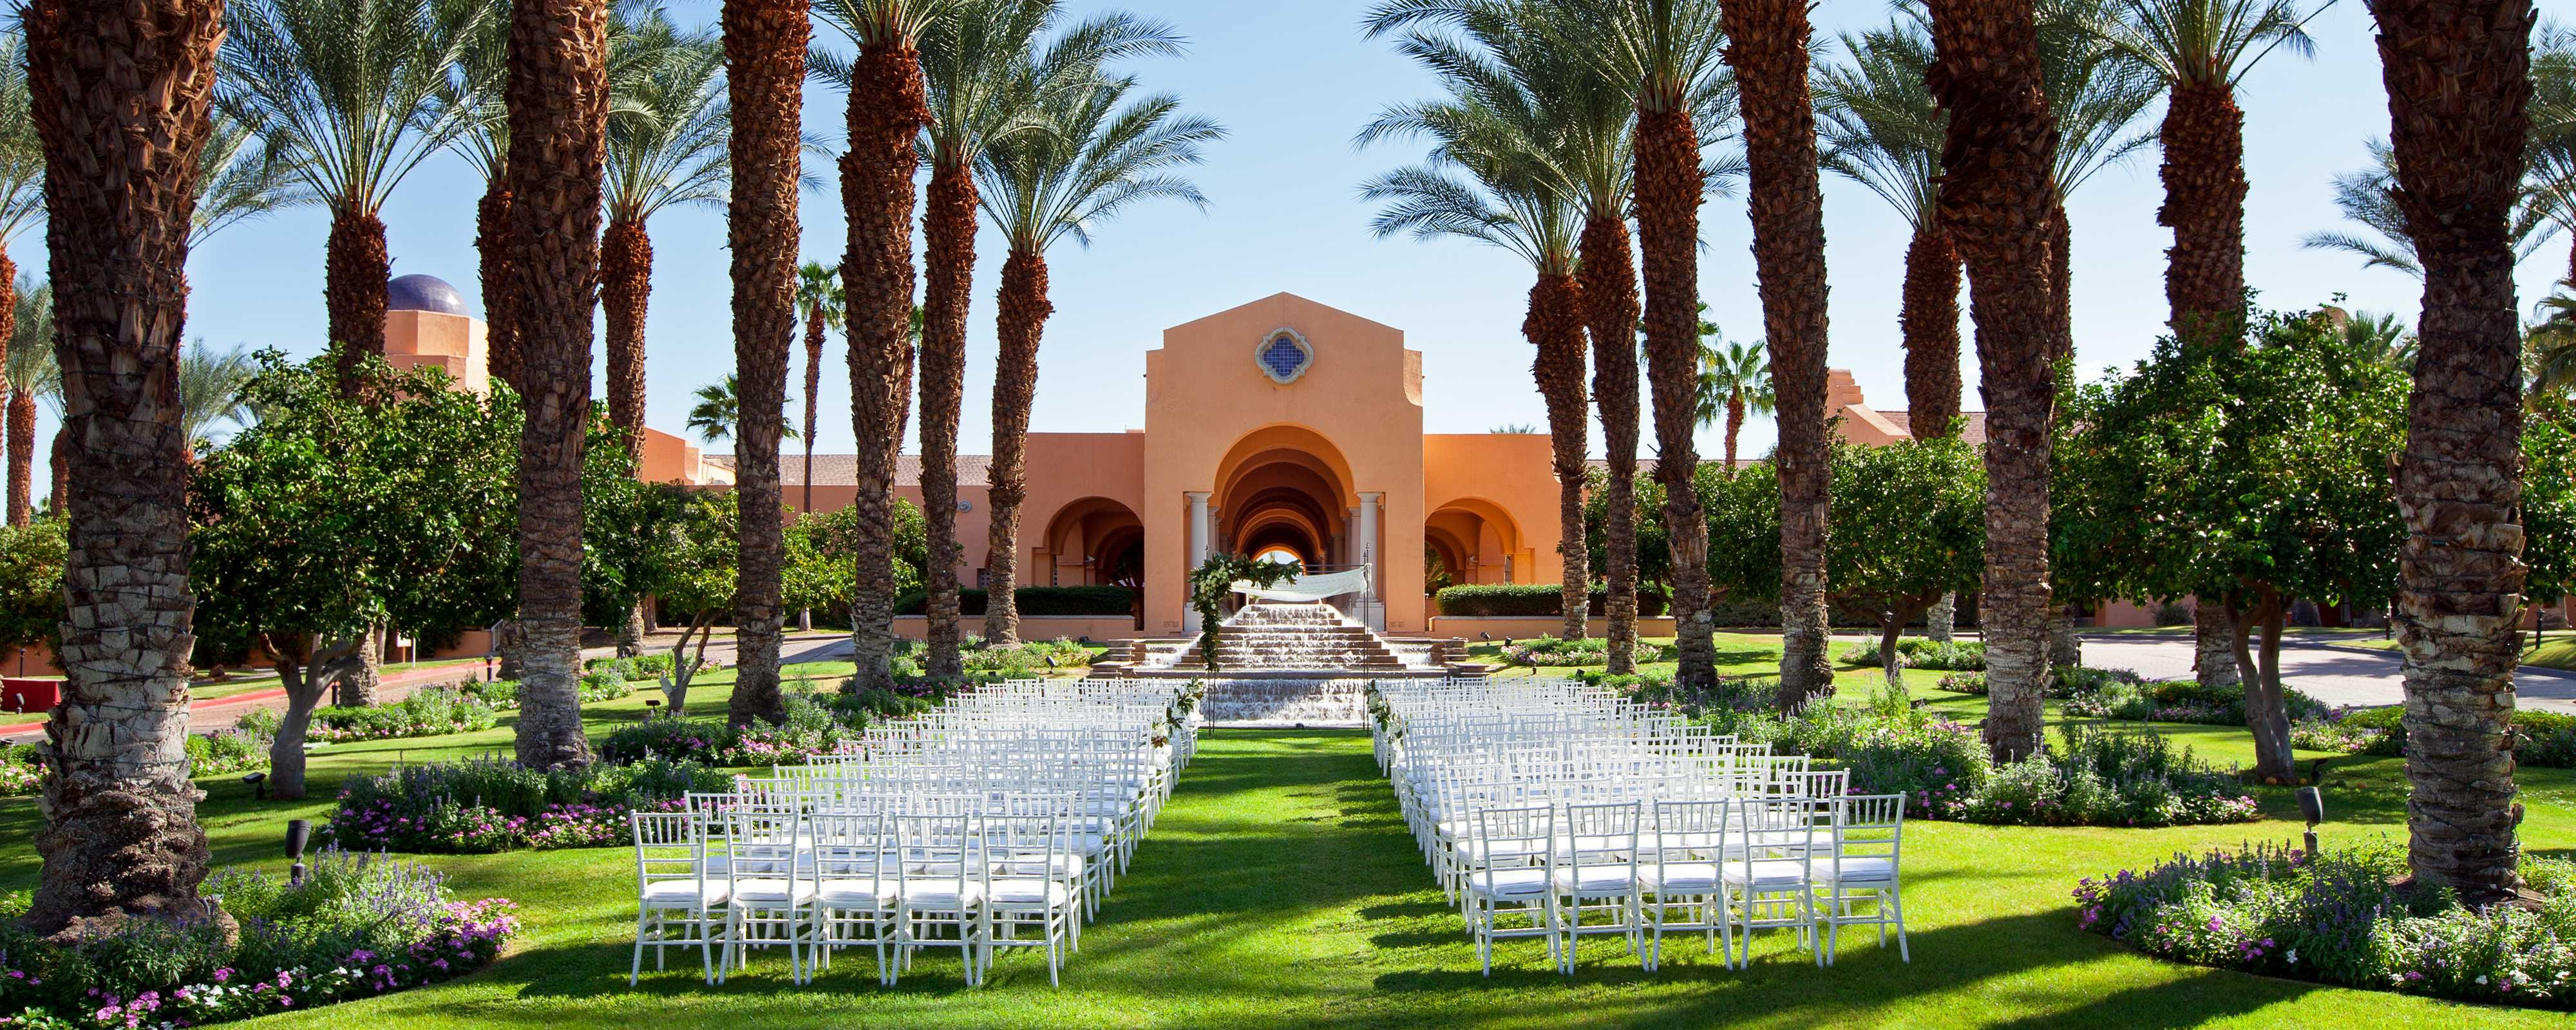 Wedding Venues In Palm Springs The Westin Mission Hills Golf Resort Spa